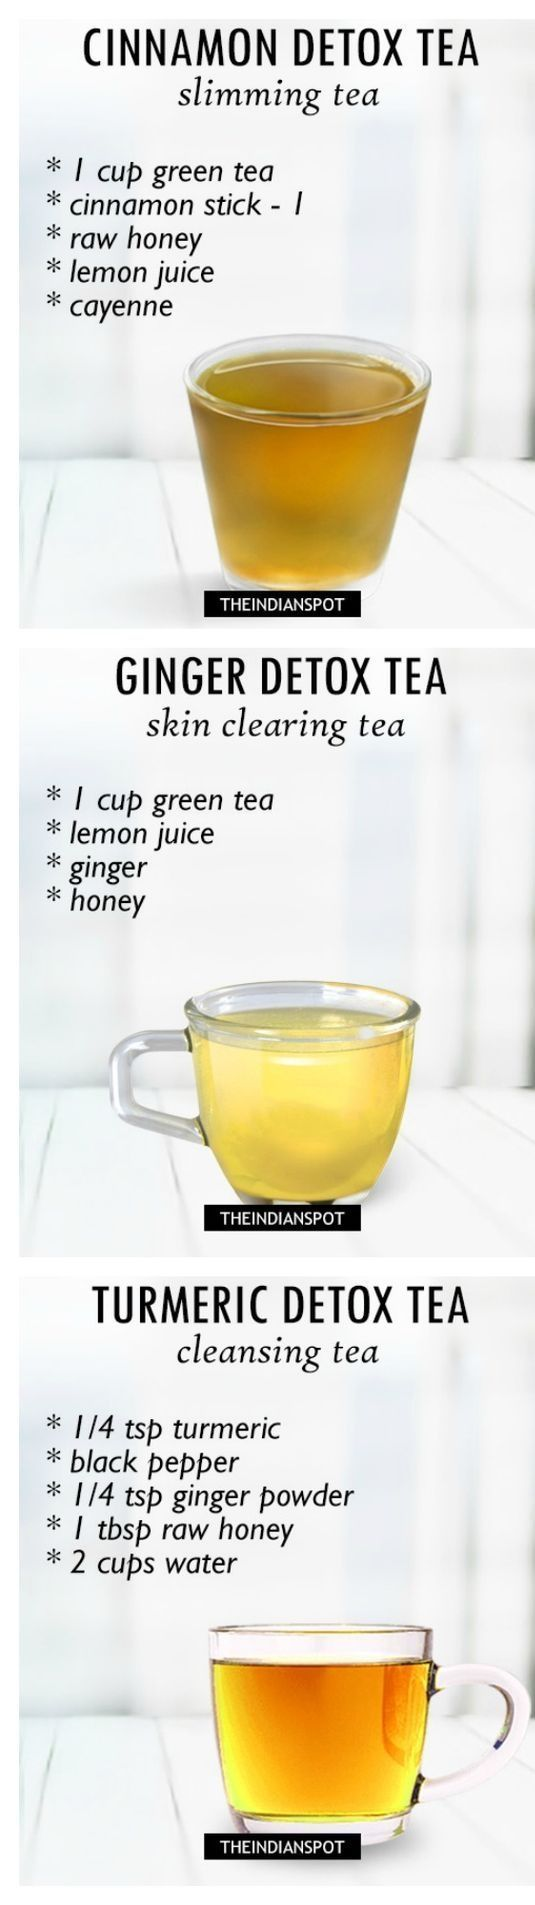 Morning Detox tea recipes for healthy body and glowing skin